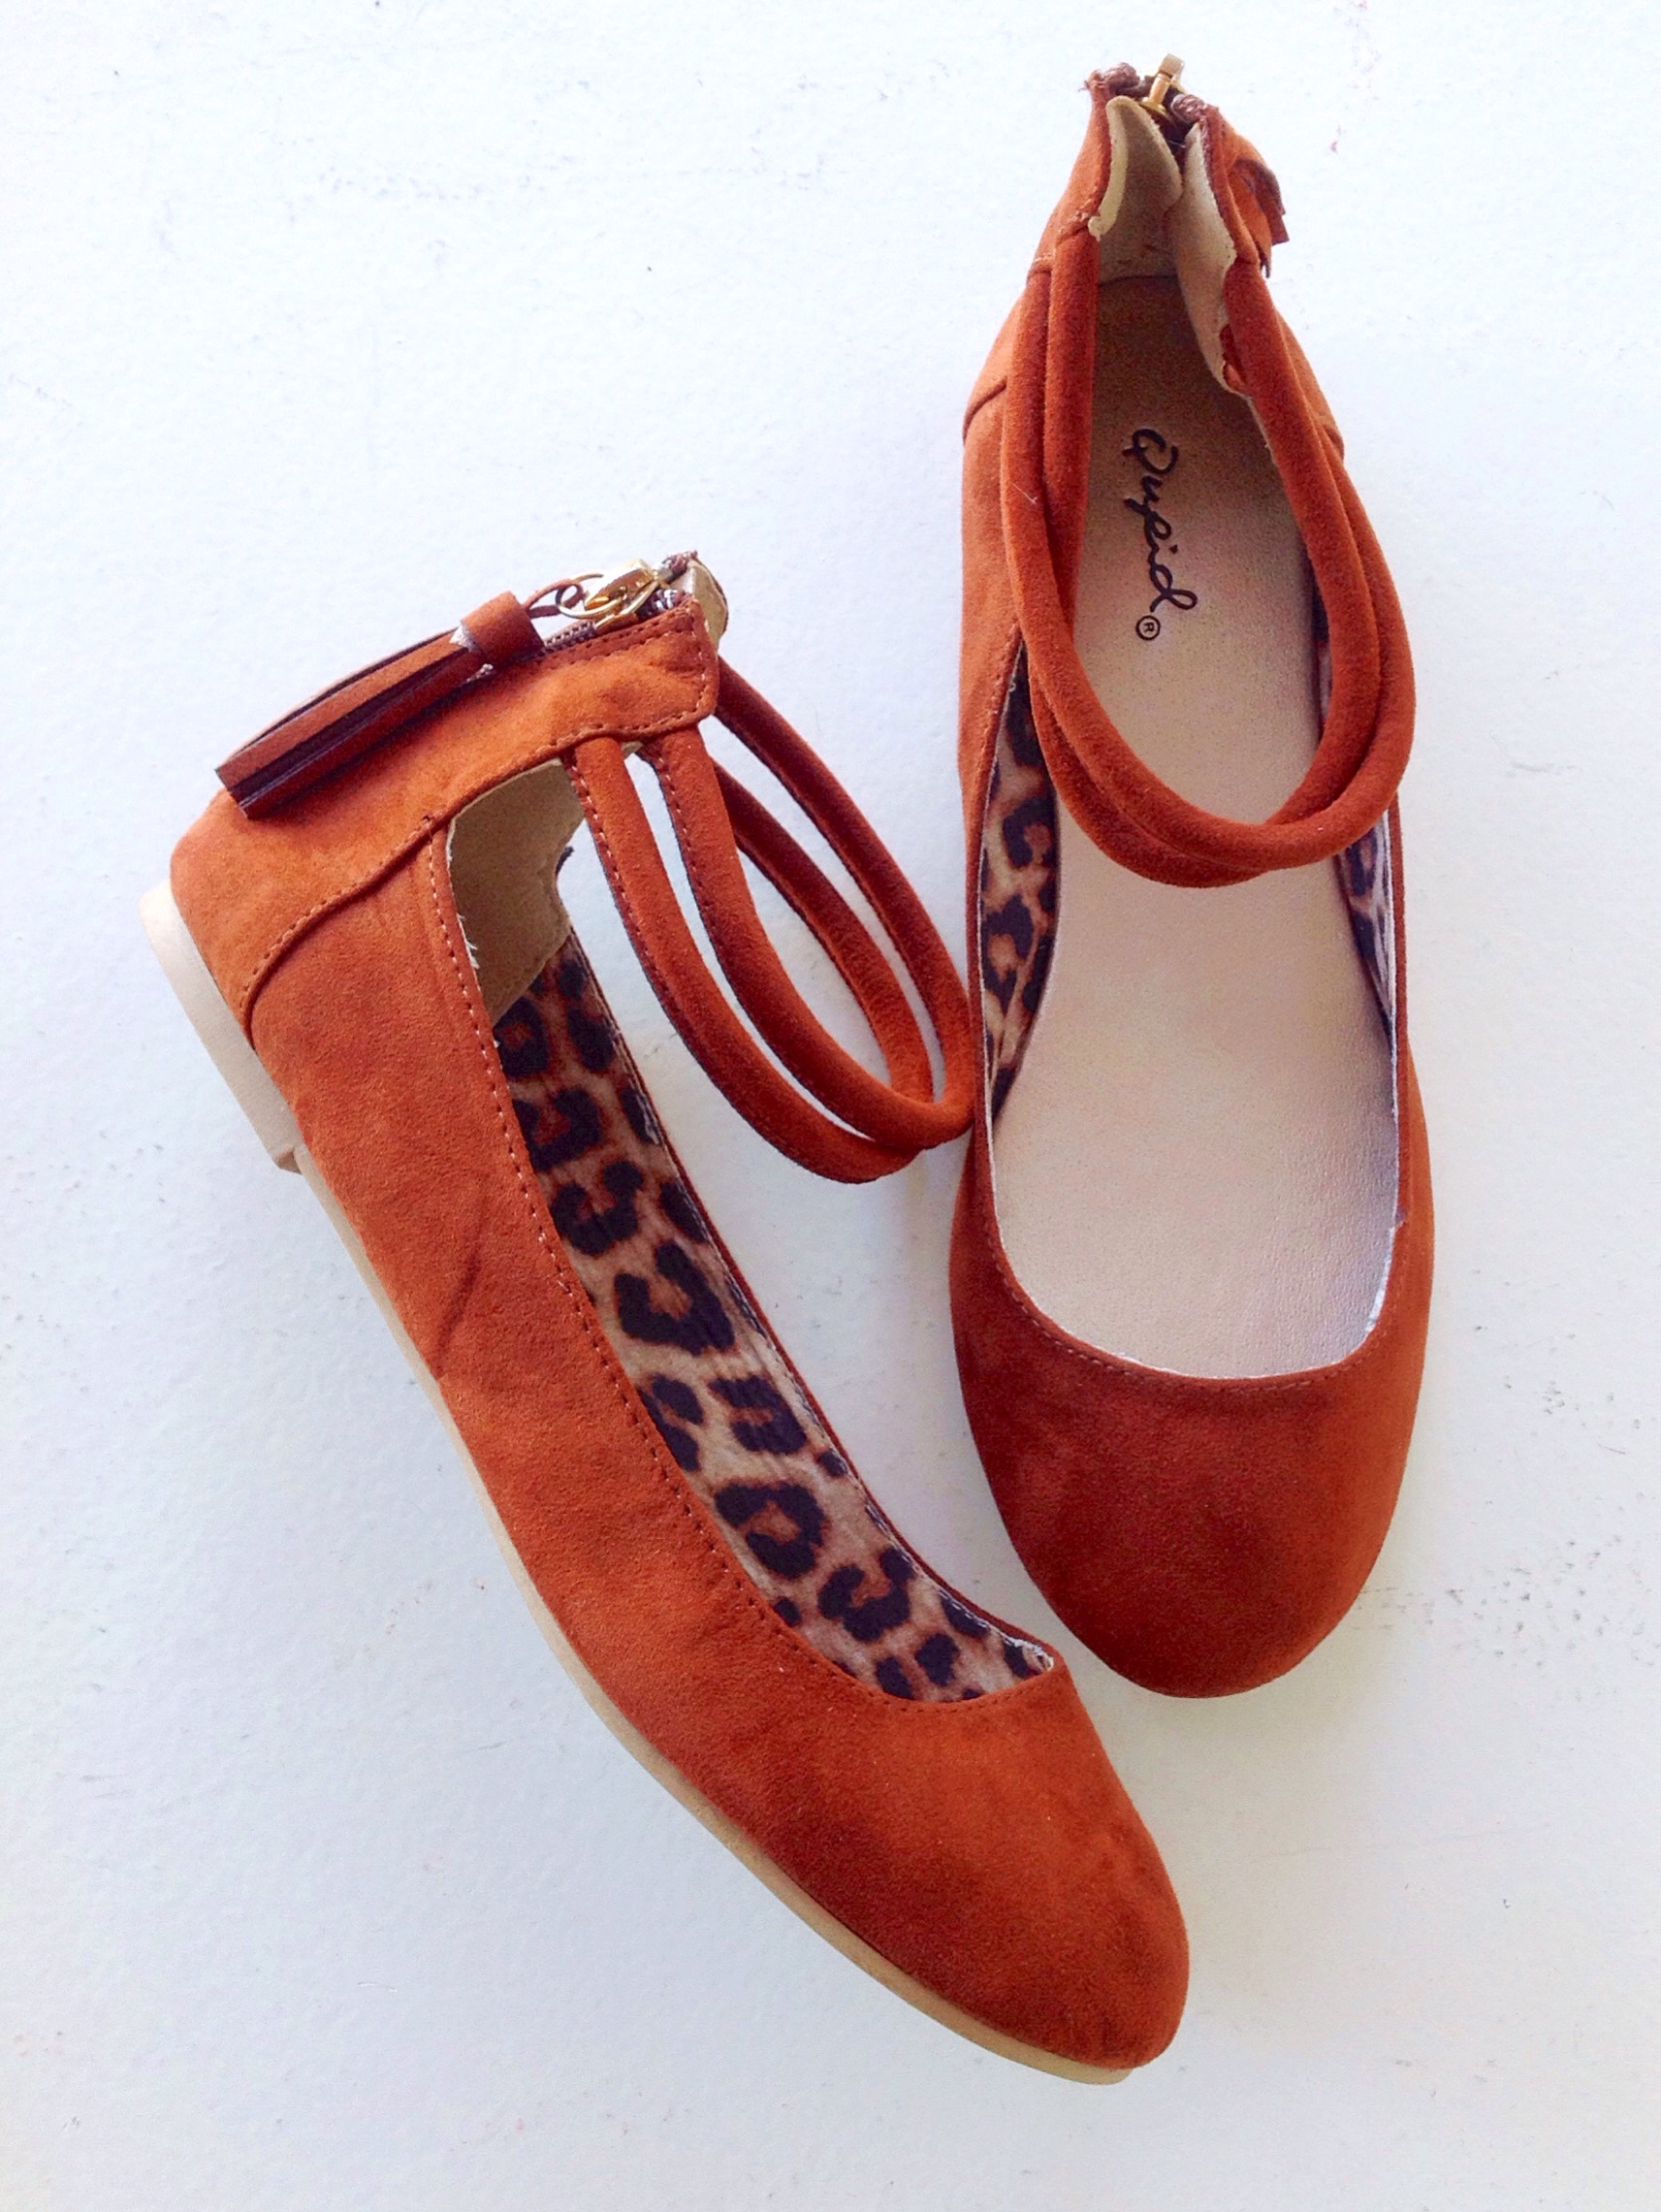 Faus suede ballet flats with ankle straps and back tasseled zippers in whiskey, $28